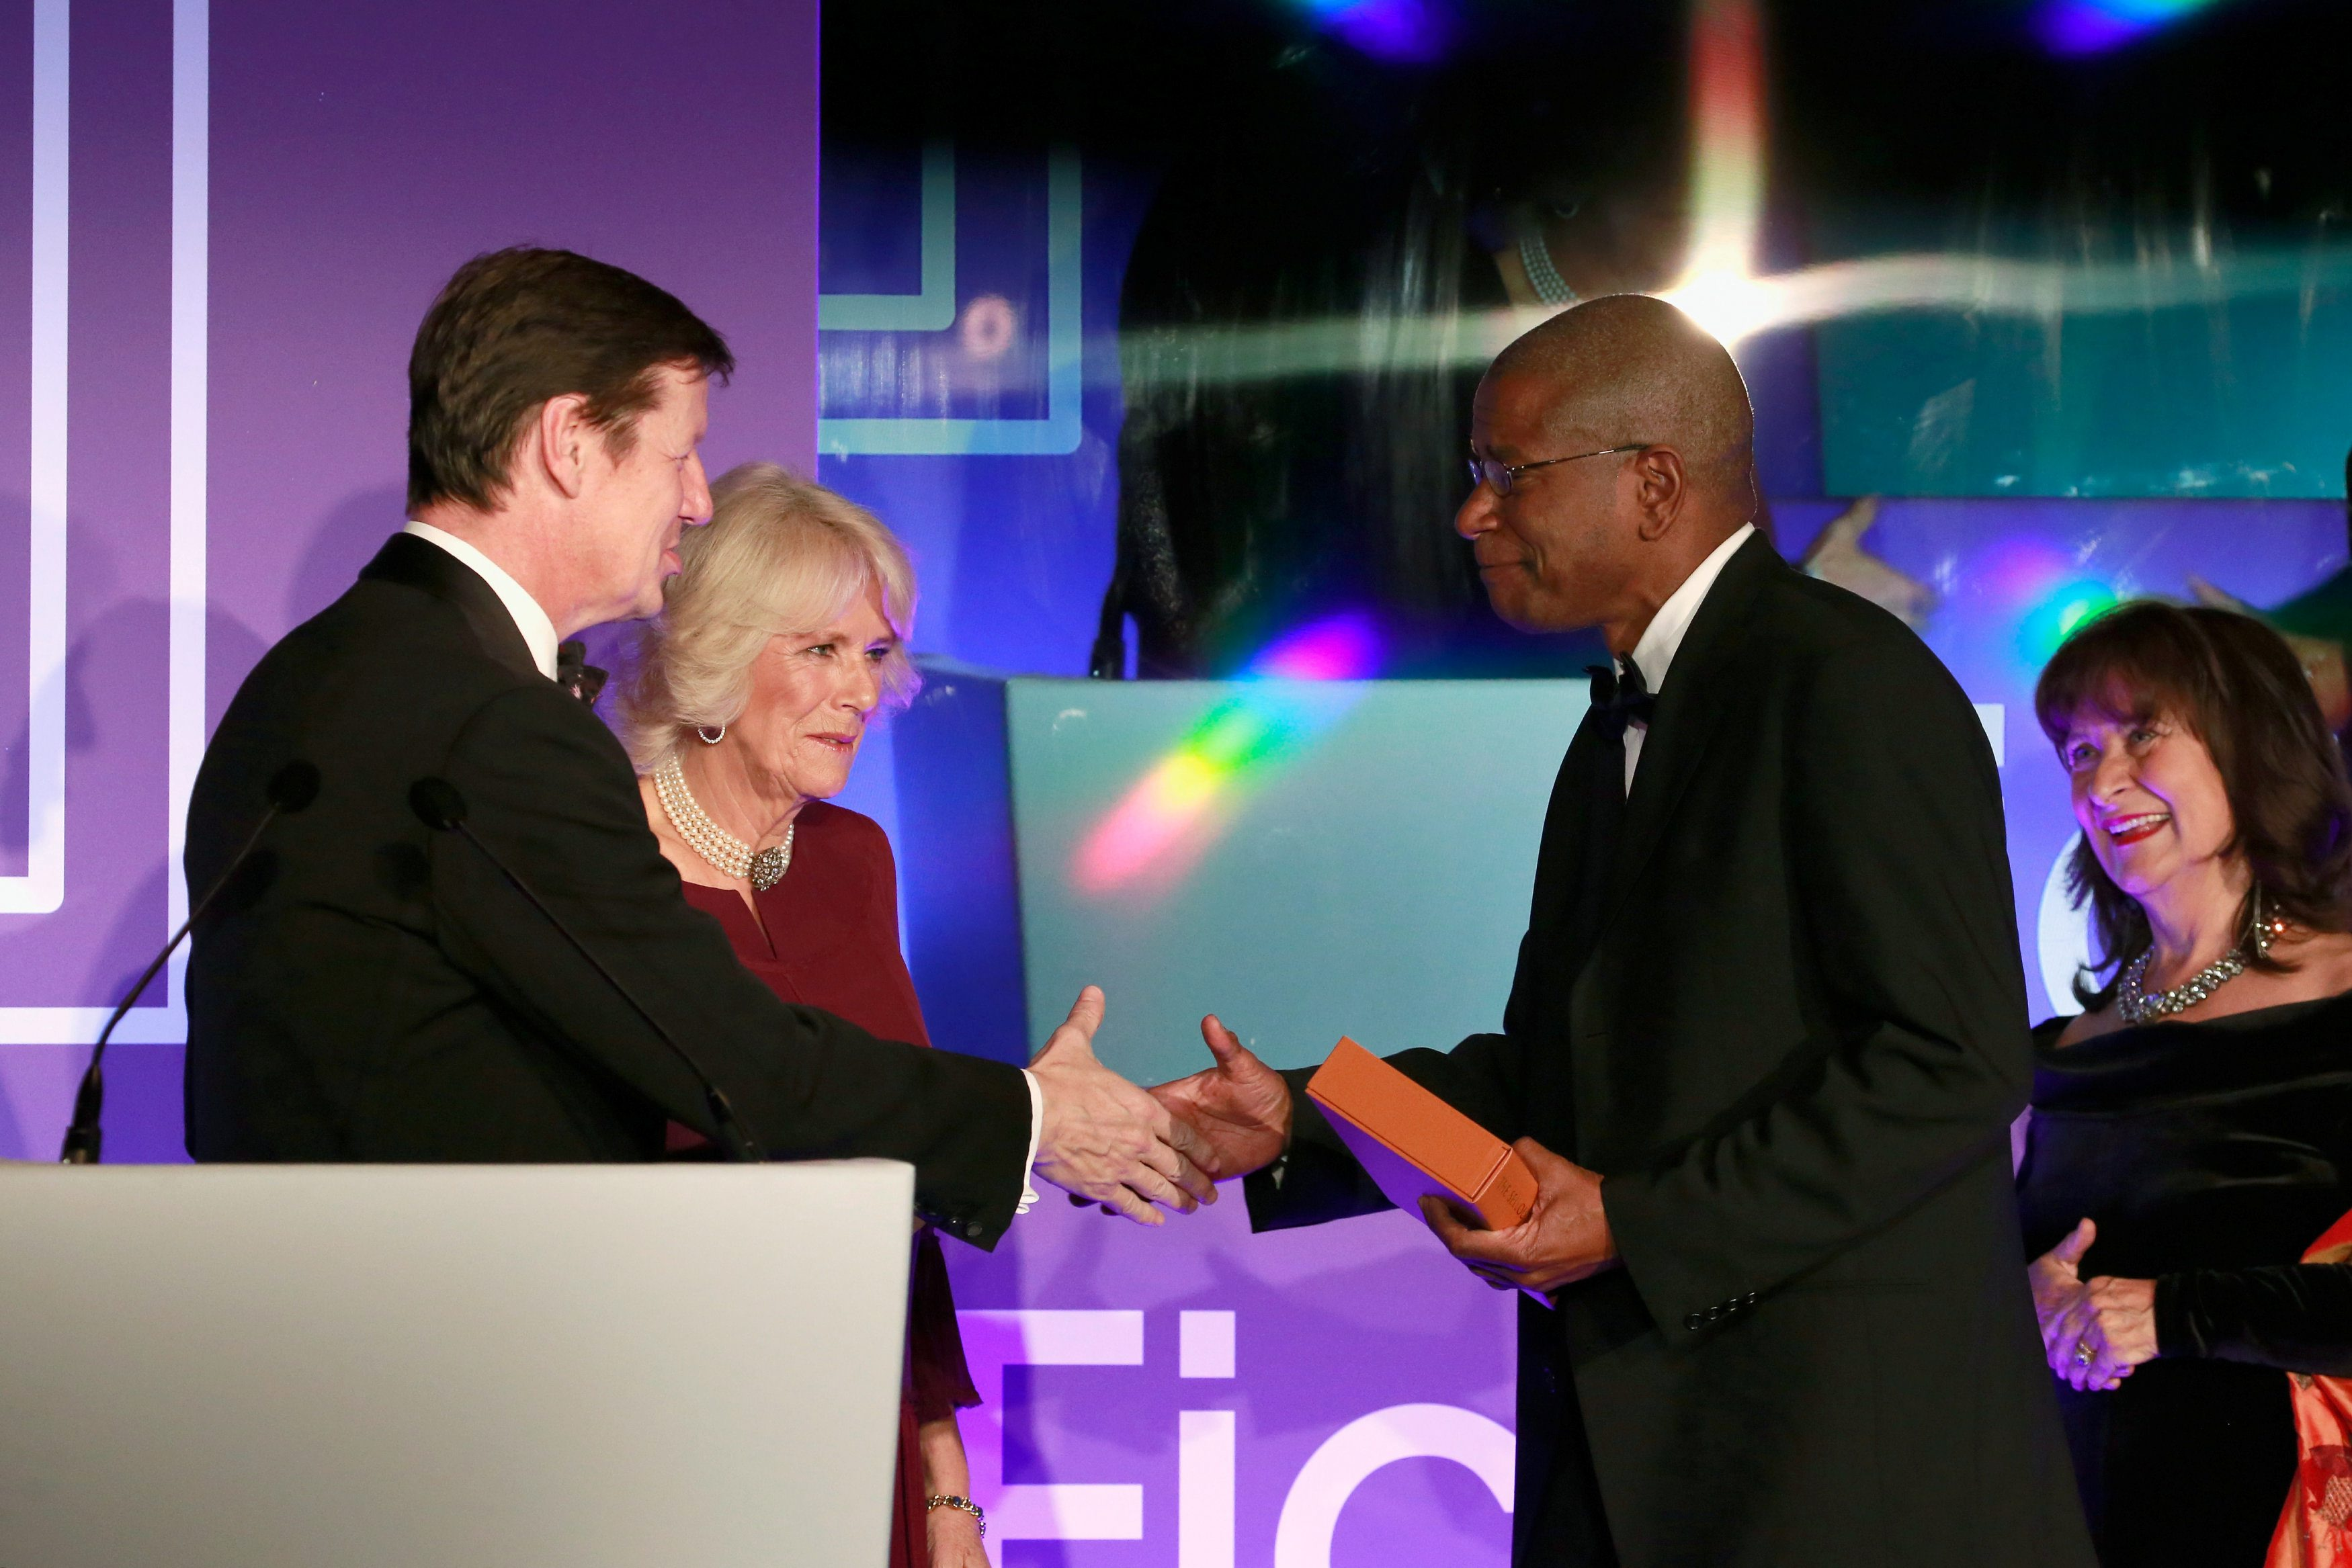 (L-R) Luke Ellis and Camilla, Duchess of Cornwall present shortlisted author Paul Beatty with a copy of his book 'The Sellout ' at the 2016 Man Booker Prize at The Guildhall on October 25, 2016 in London, England. REUTERS/John Phillips/Pool